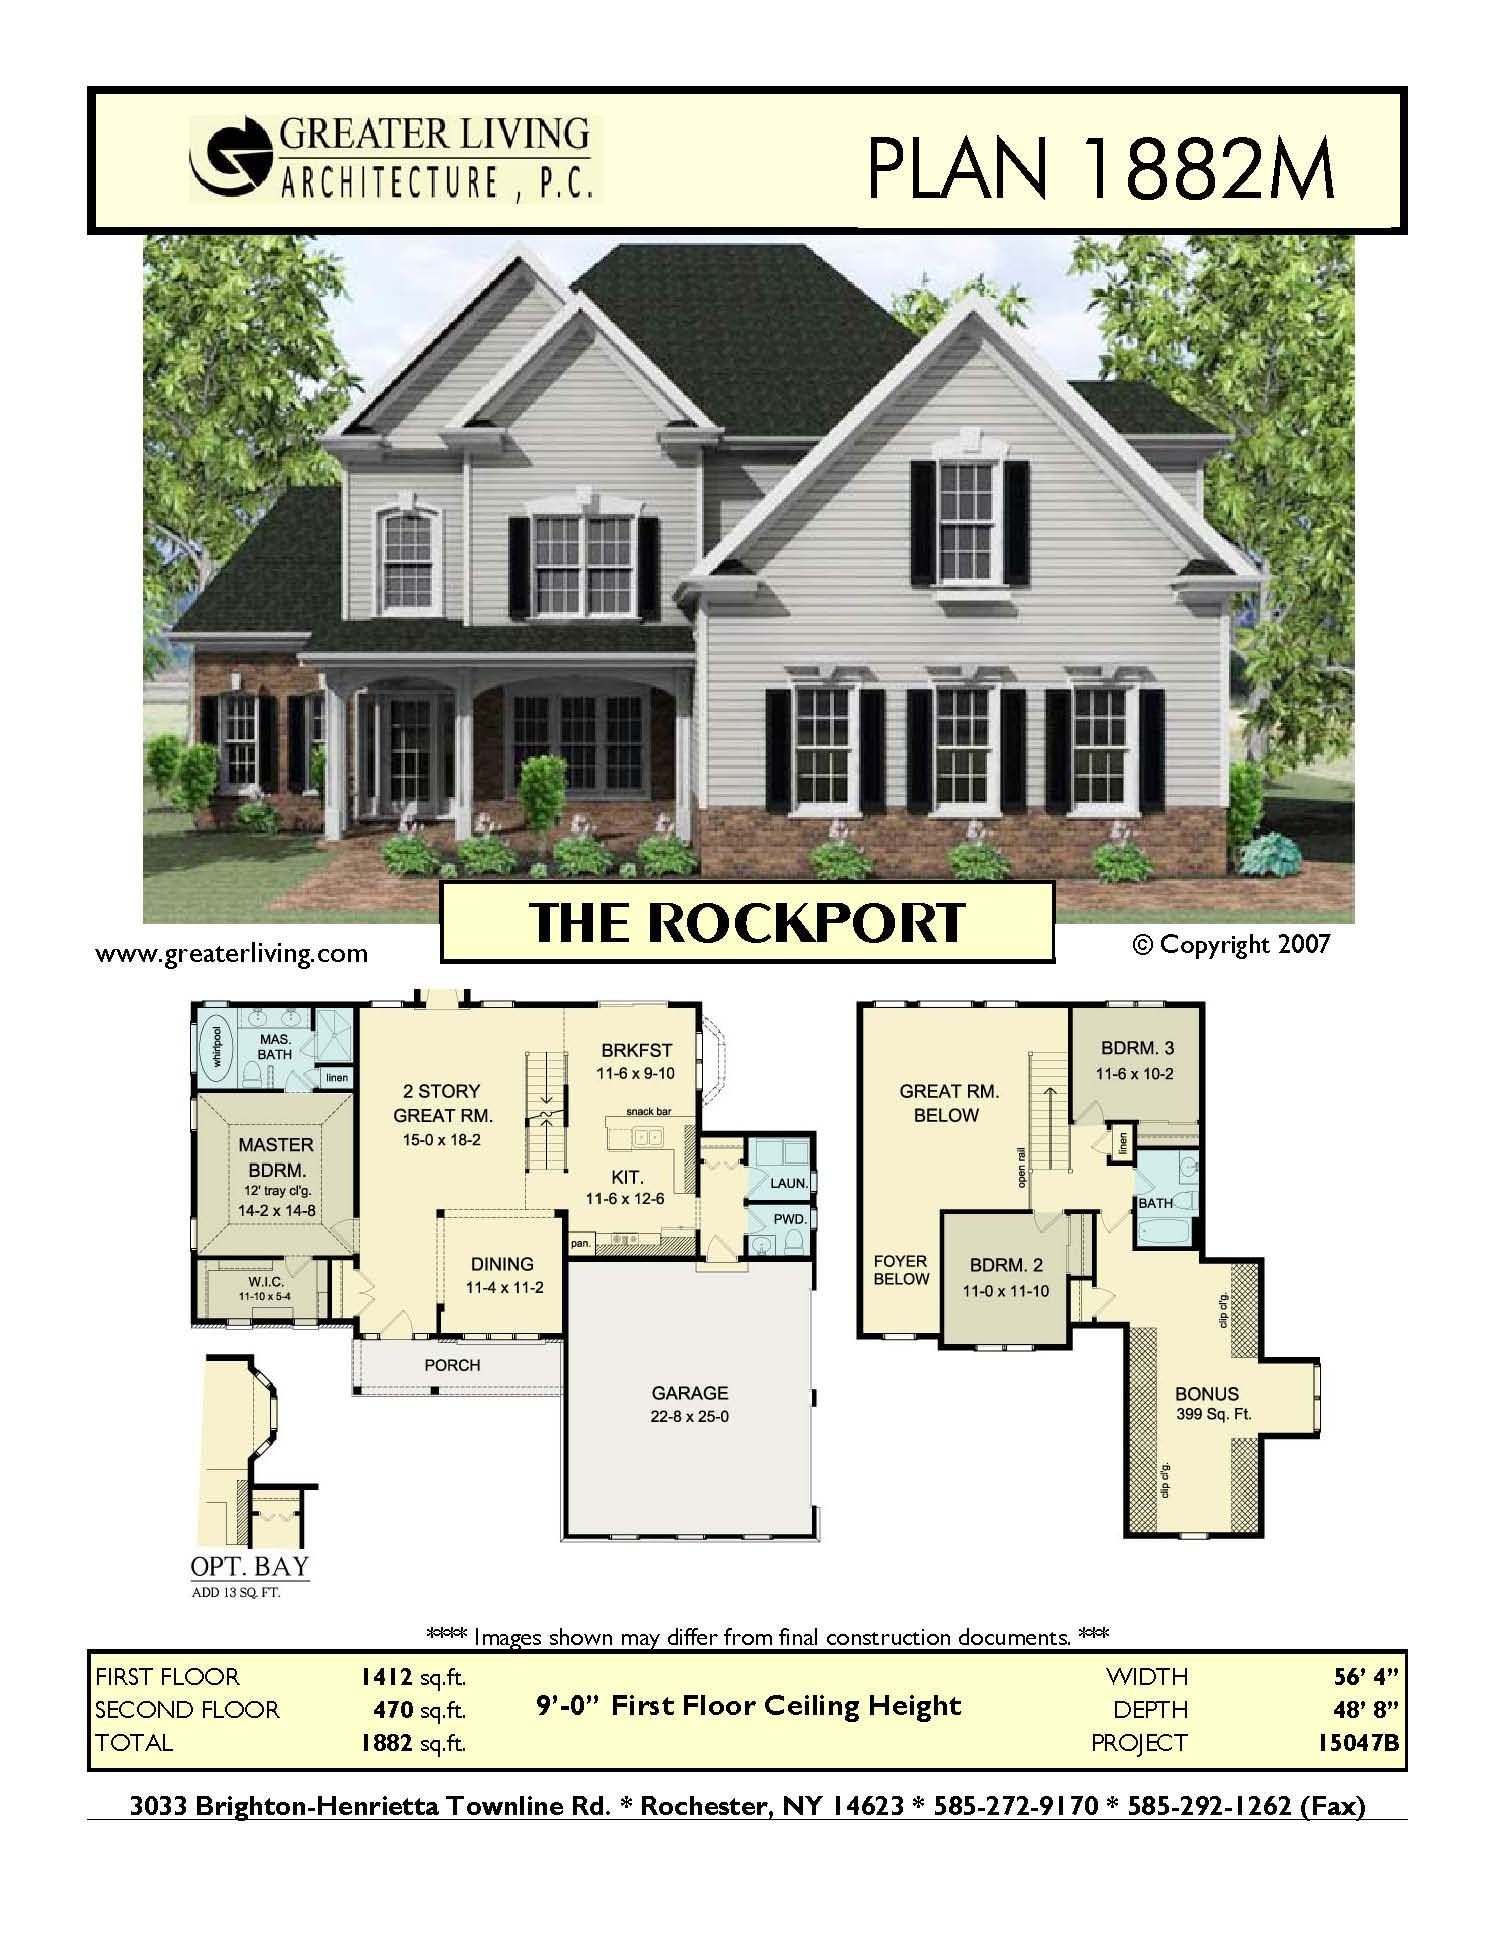 Greater Living Architecture Sims House Design Architecture 4 Bedroom House Plans